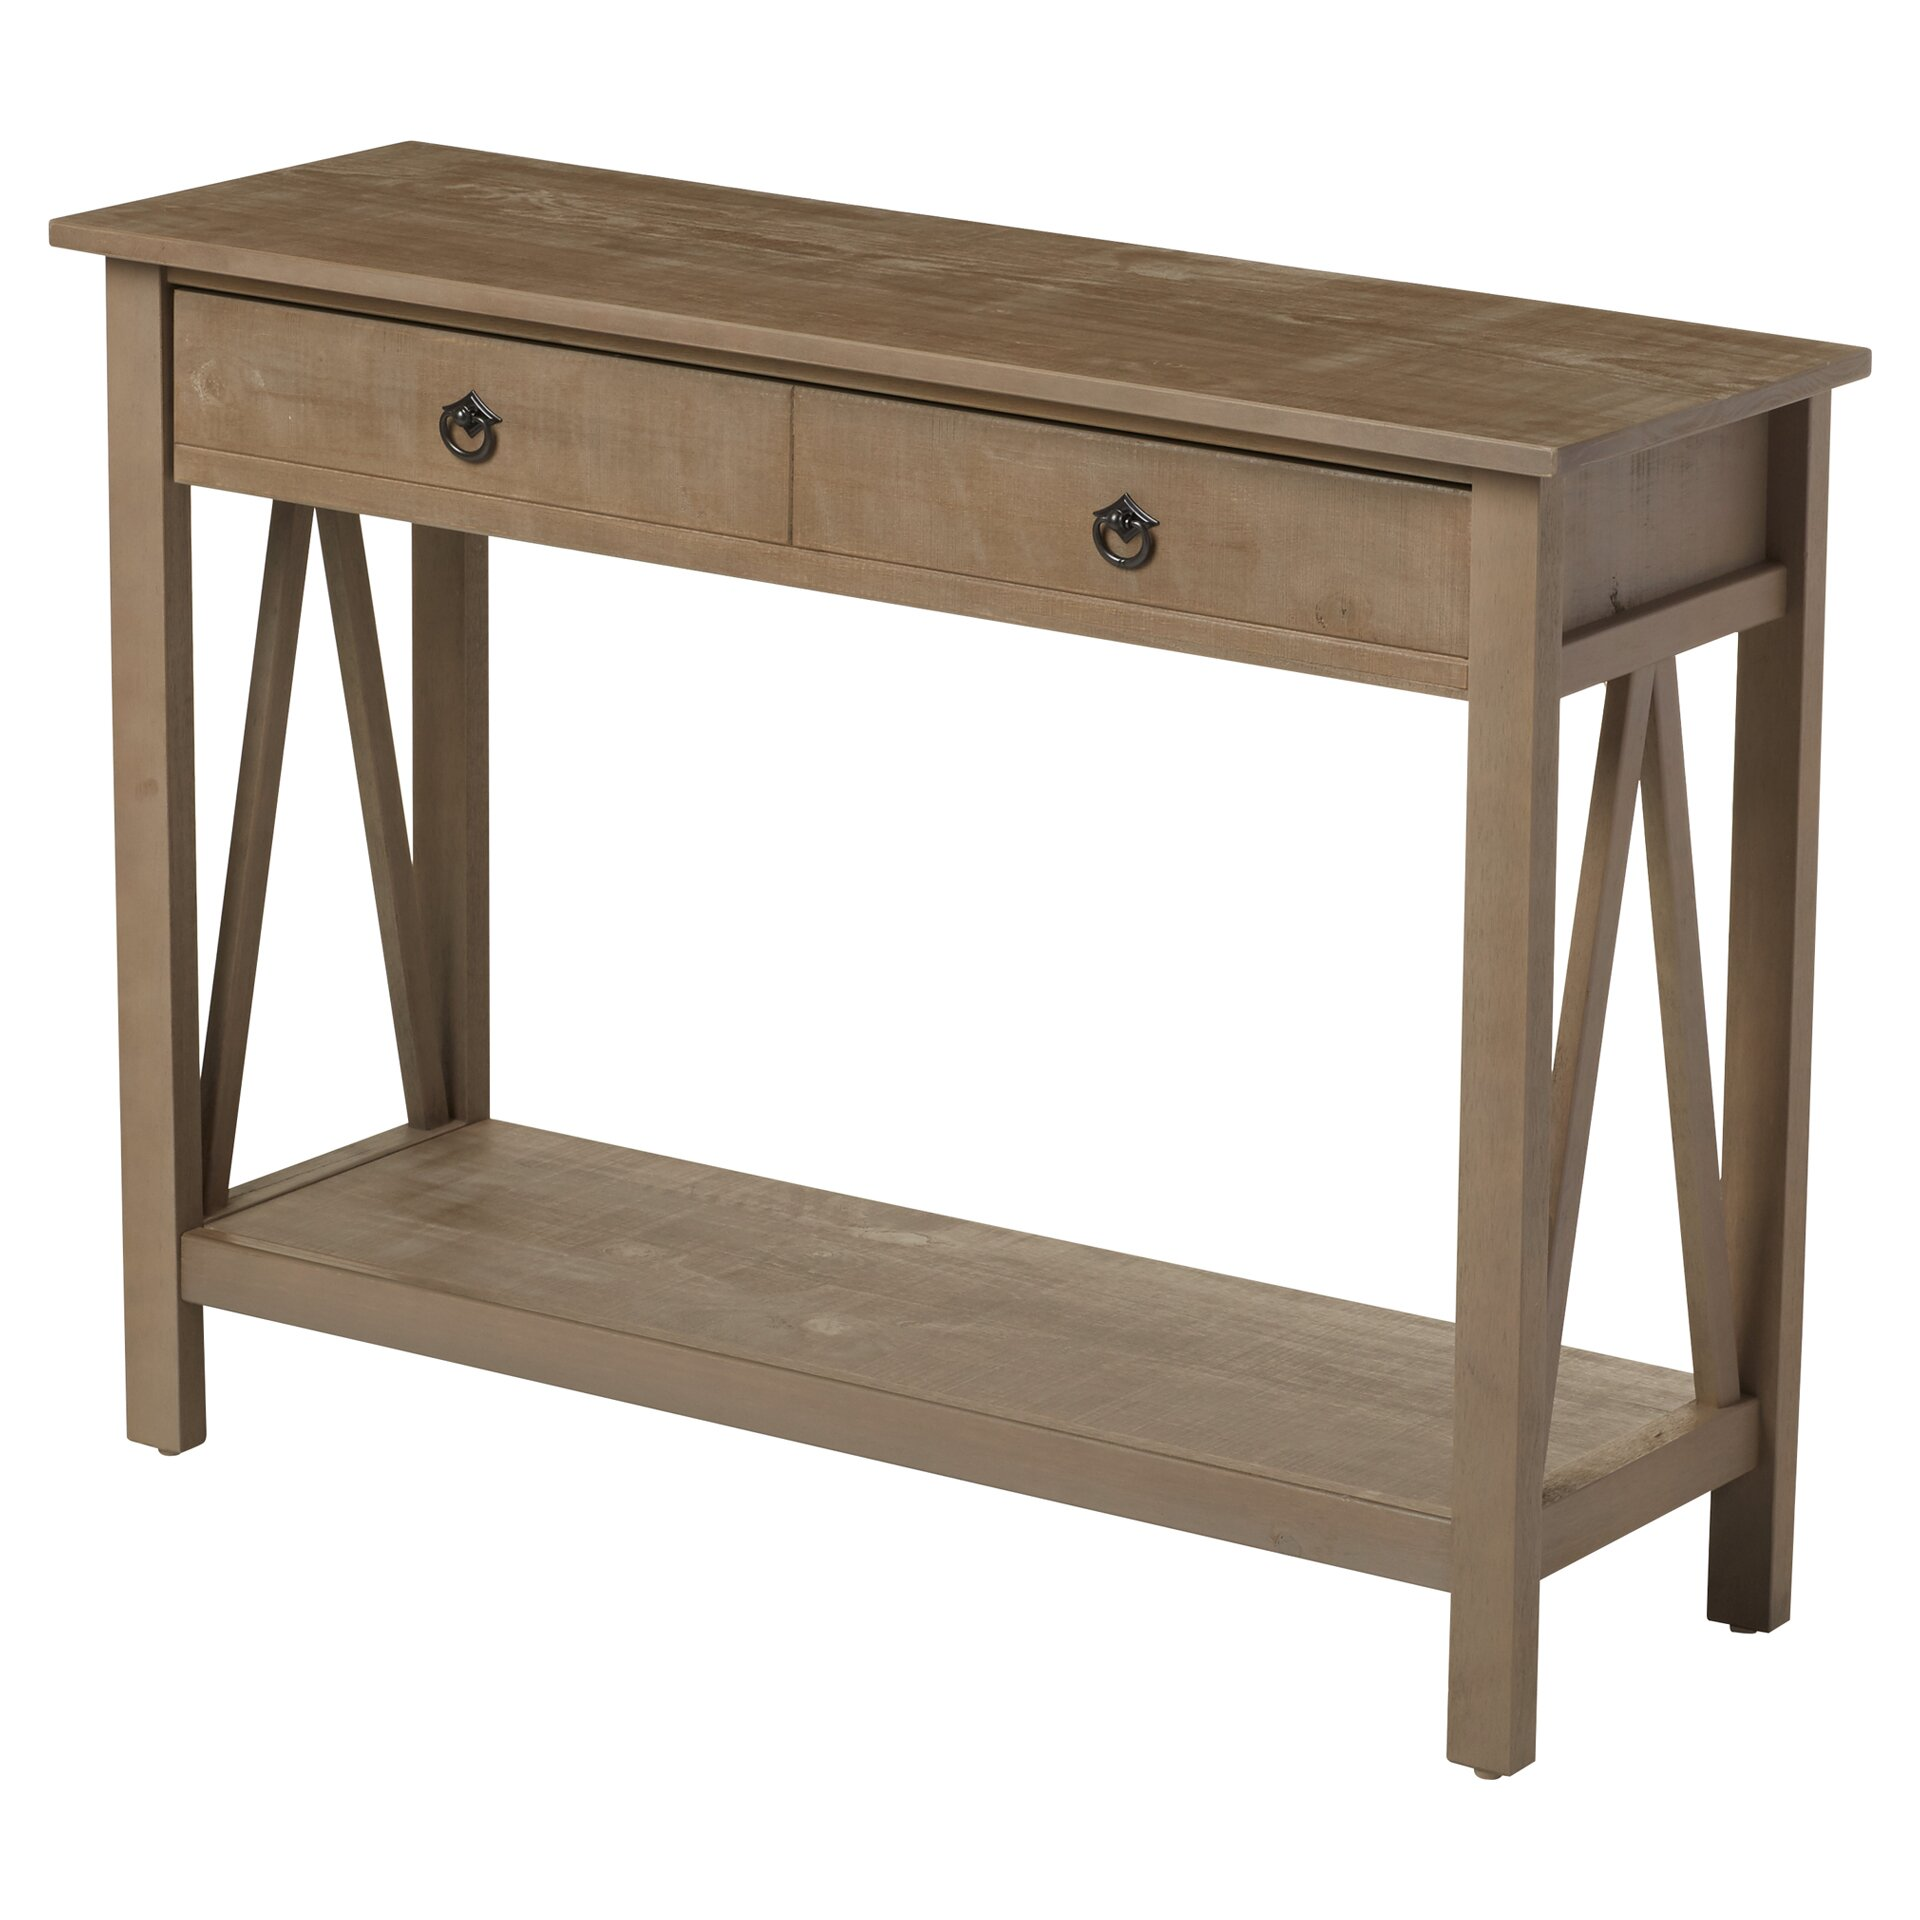 Andover Mills Soule Console Table amp Reviews Wayfair : Console2BTable from www.wayfair.com size 1920 x 1920 jpeg 323kB